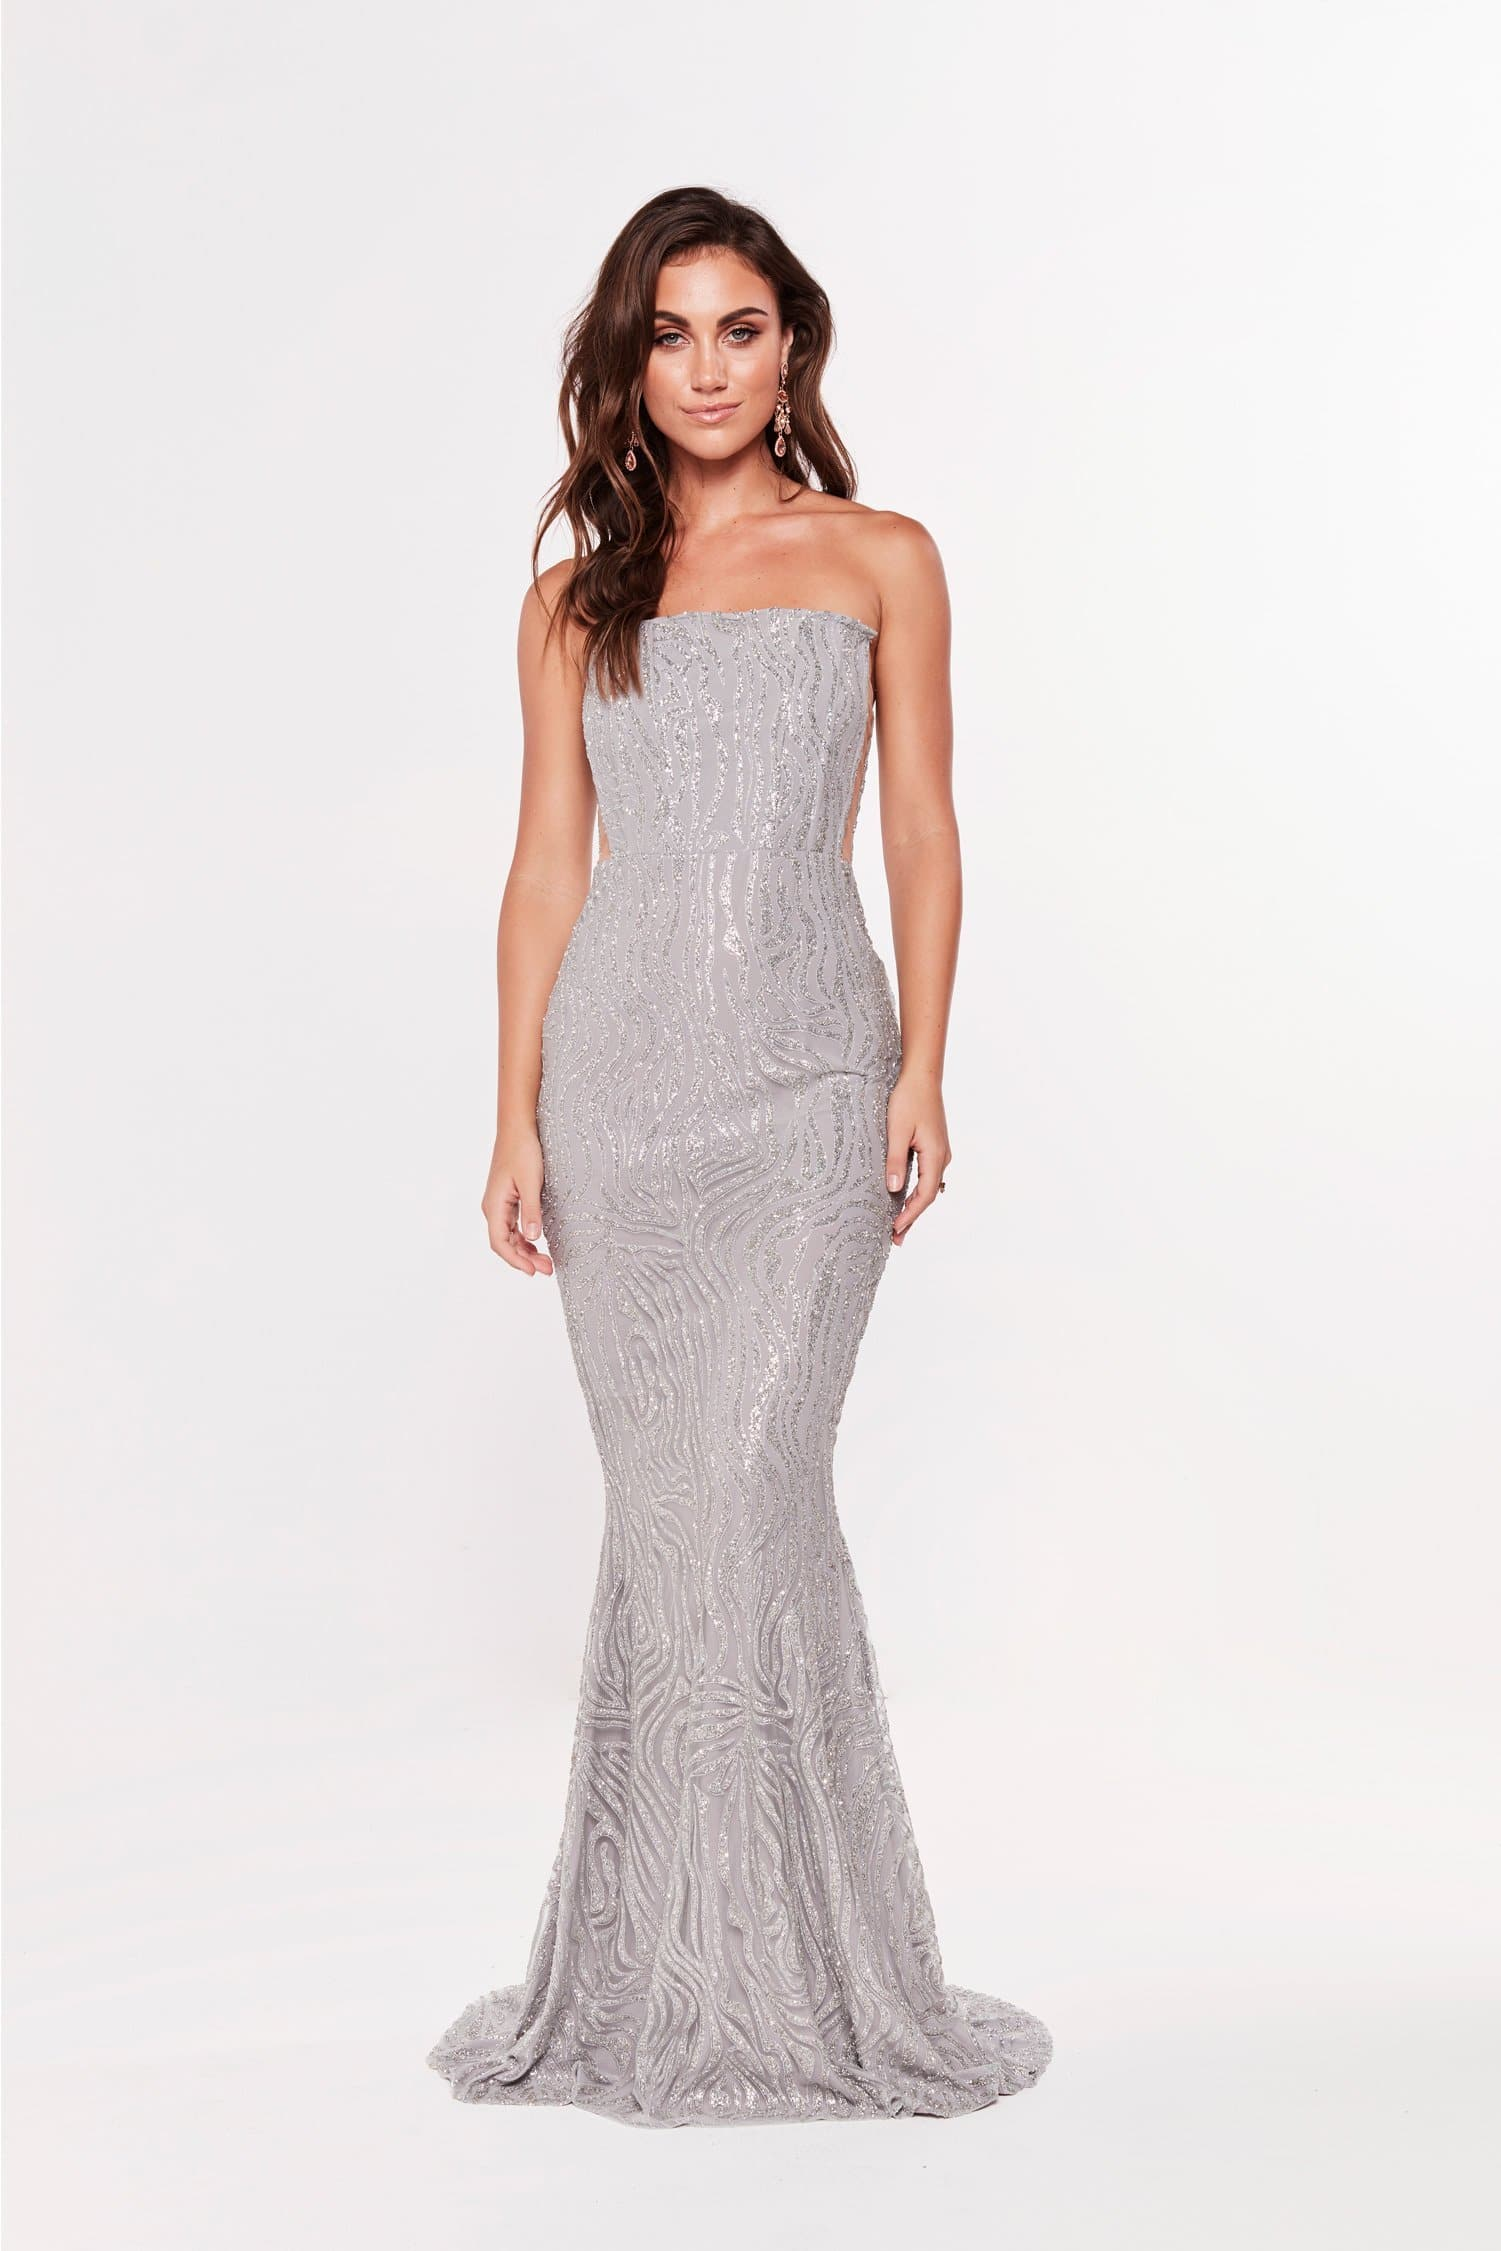 A&N Mina - Silver Glitter Strapless Gown with Side Detail